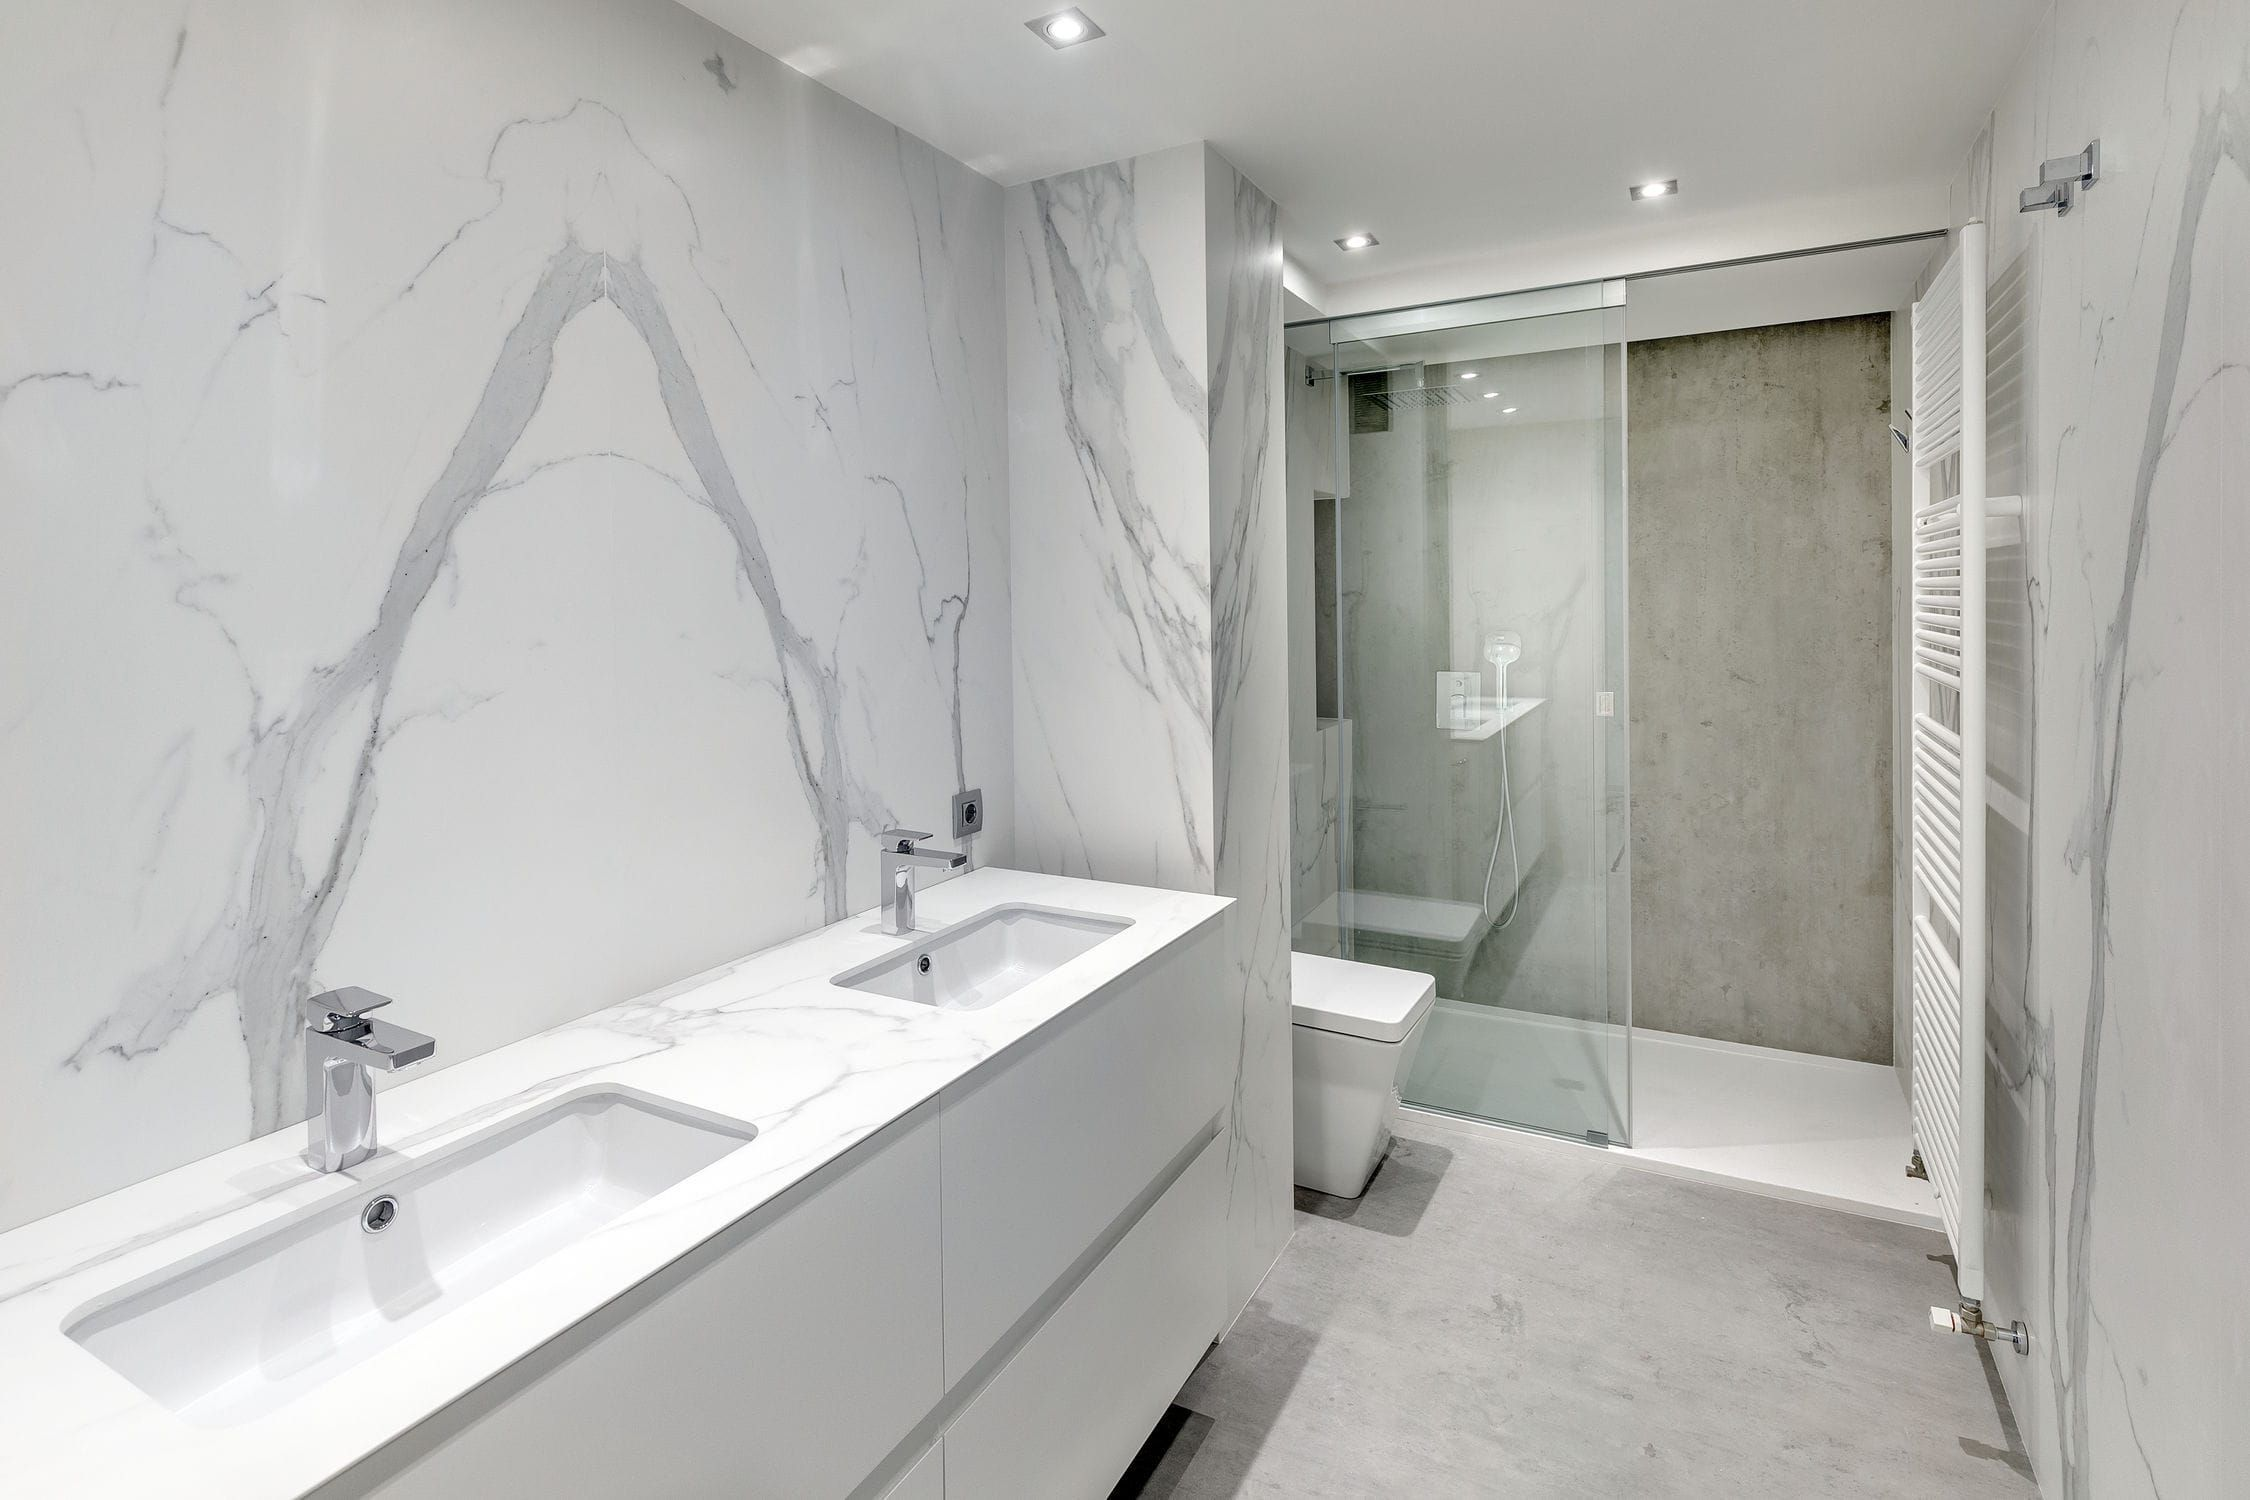 Neolith By Thesize Flooring Wallcovering Archiexpo Ba Os